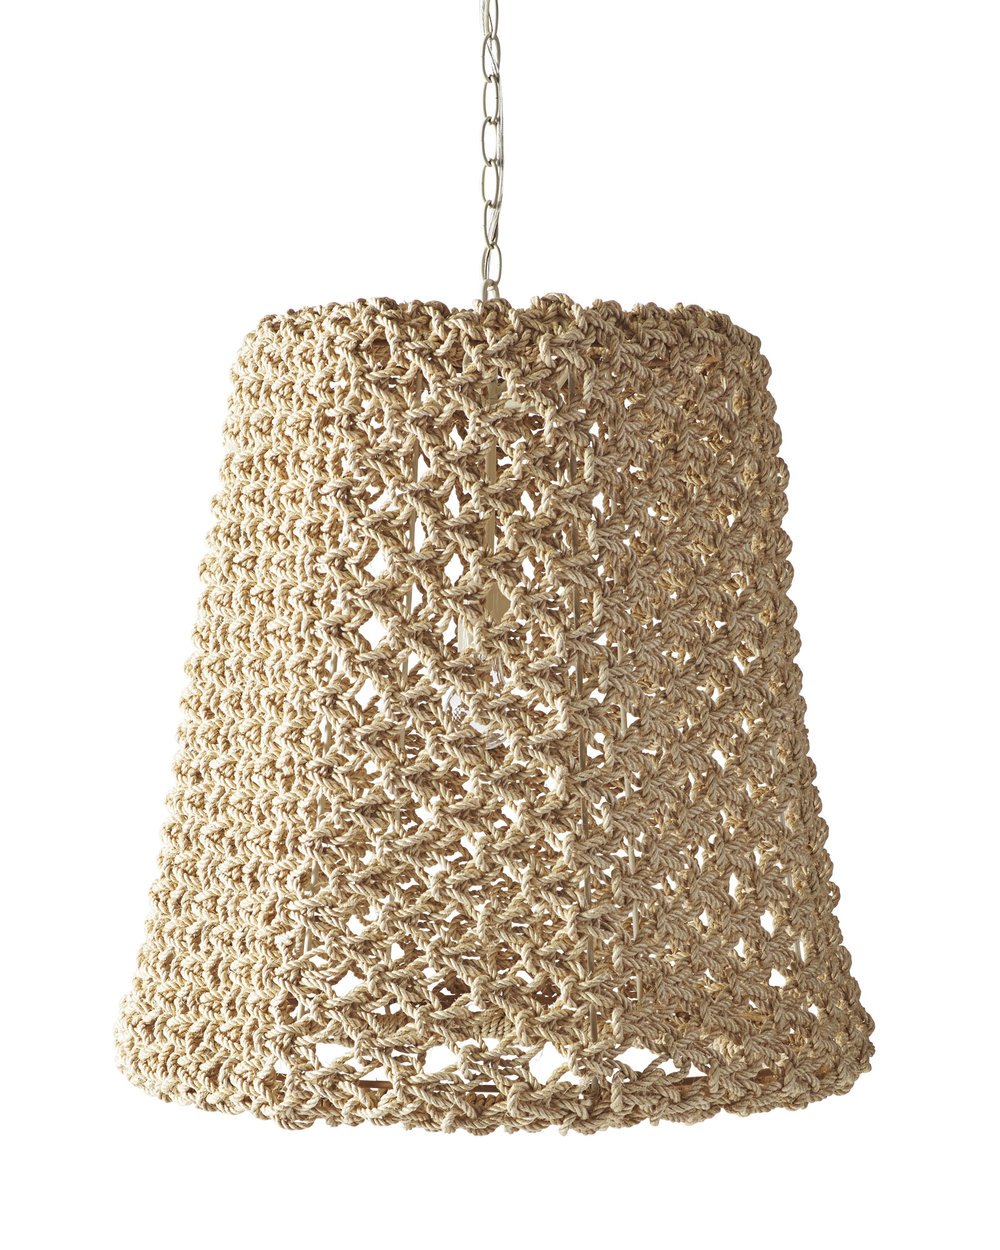 Lighting_Yountville_Woven_Abaca_Pendant_MV_Crop_OL.jpg